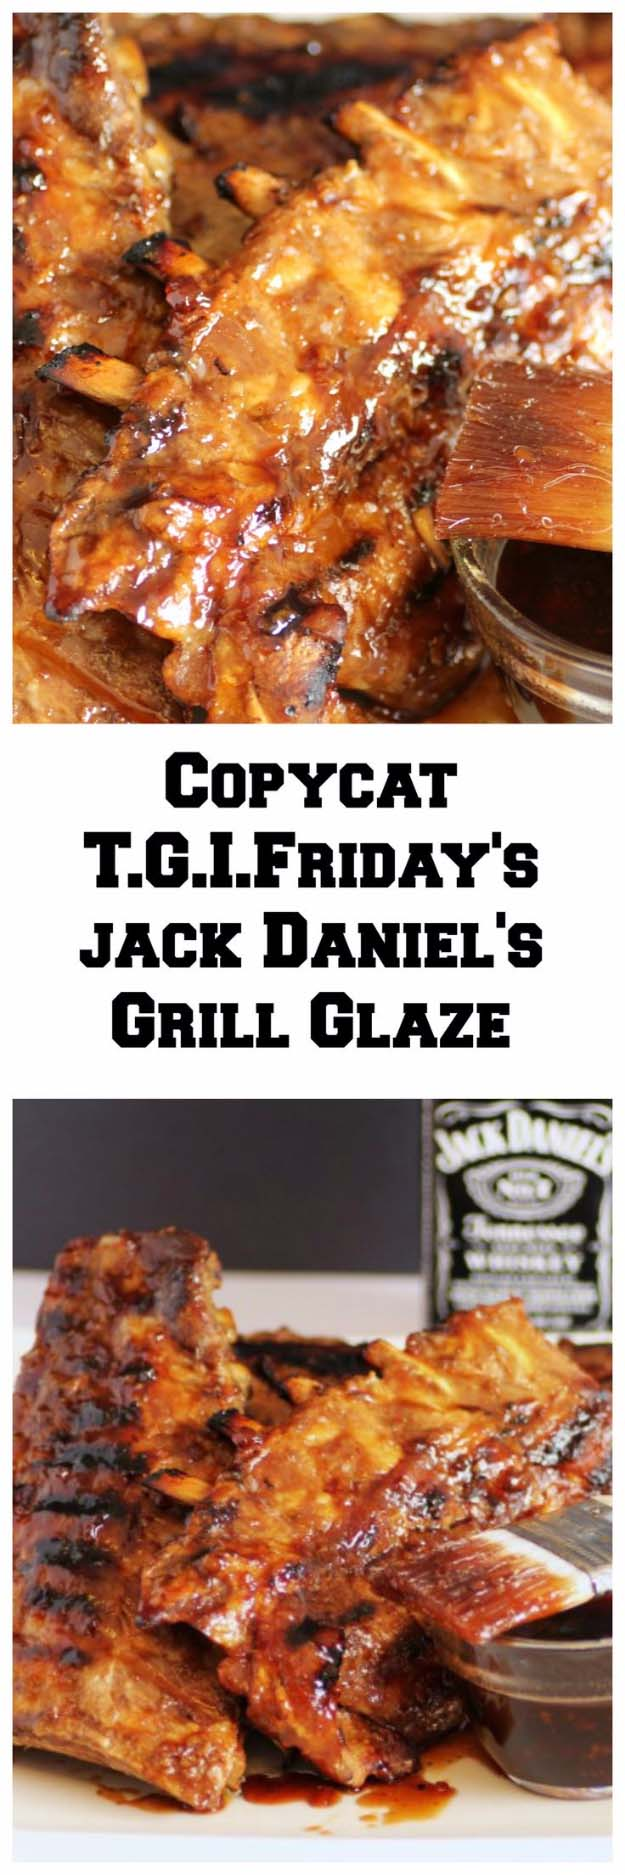 Fun DIY Ideas Made With Jack Daniels - Recipes, Projects and Crafts With The Bottle, Everything From Lamps and Decorations to Fudge and Cupcakes | T.G.I. Fridays Jack Daniels Grill Glaze | http://diyjoy.com/diy-projects-jack-daniels